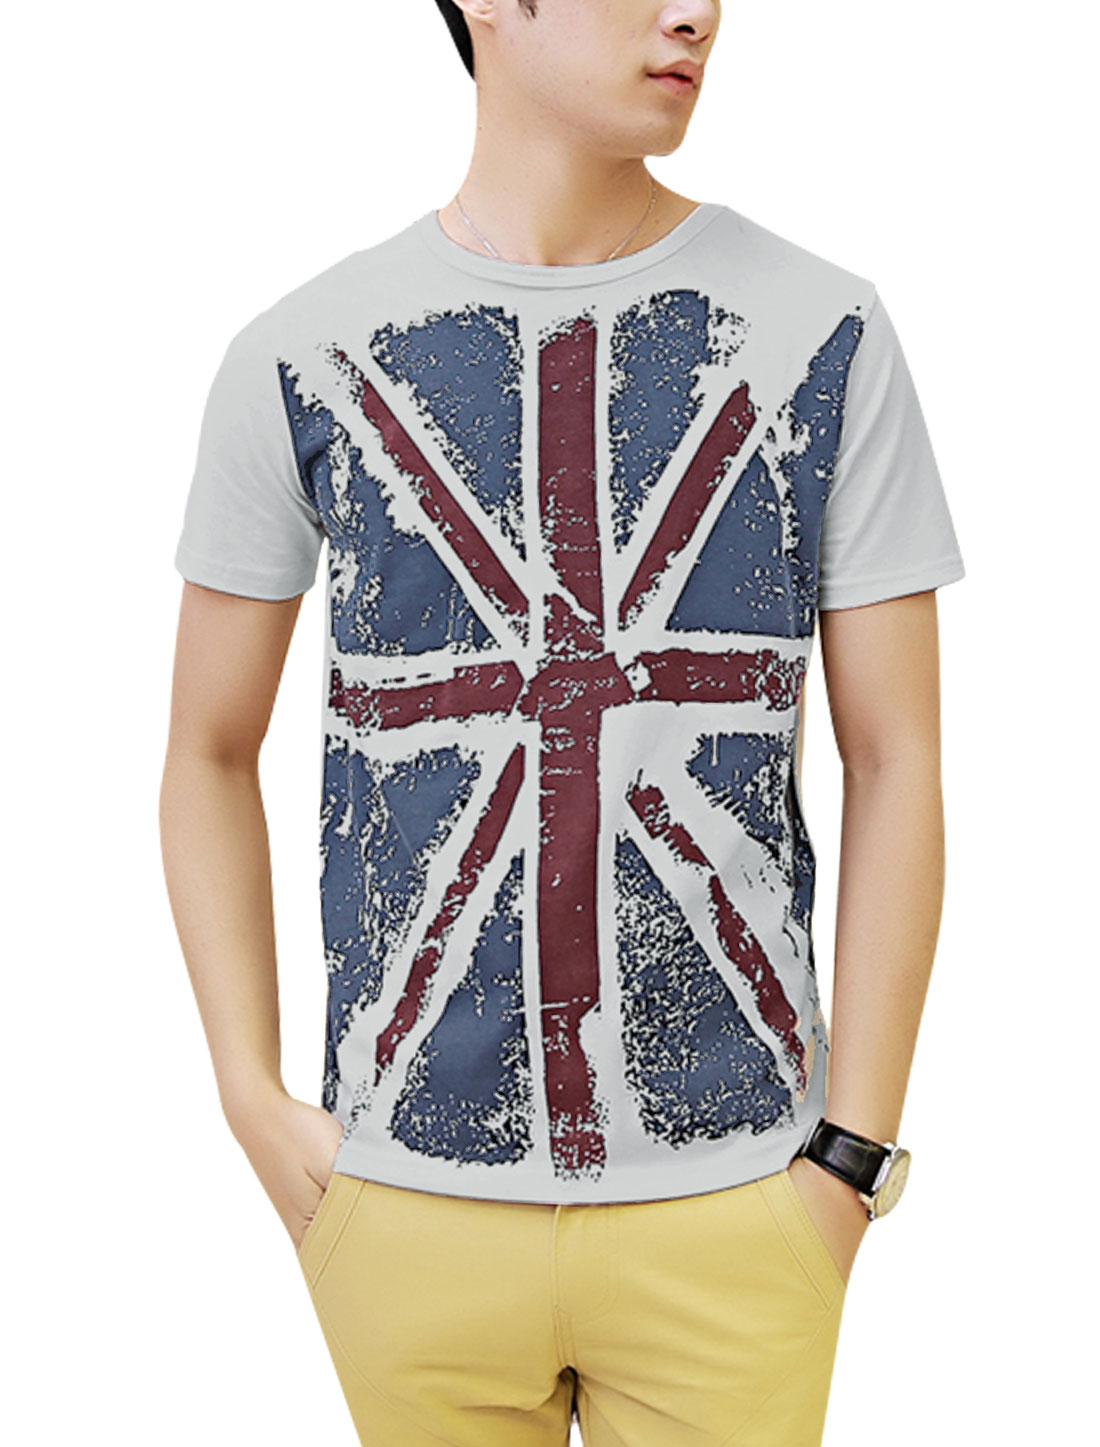 Man's Short Sleeve British Flag Print Summer Fit Top Light Gray L